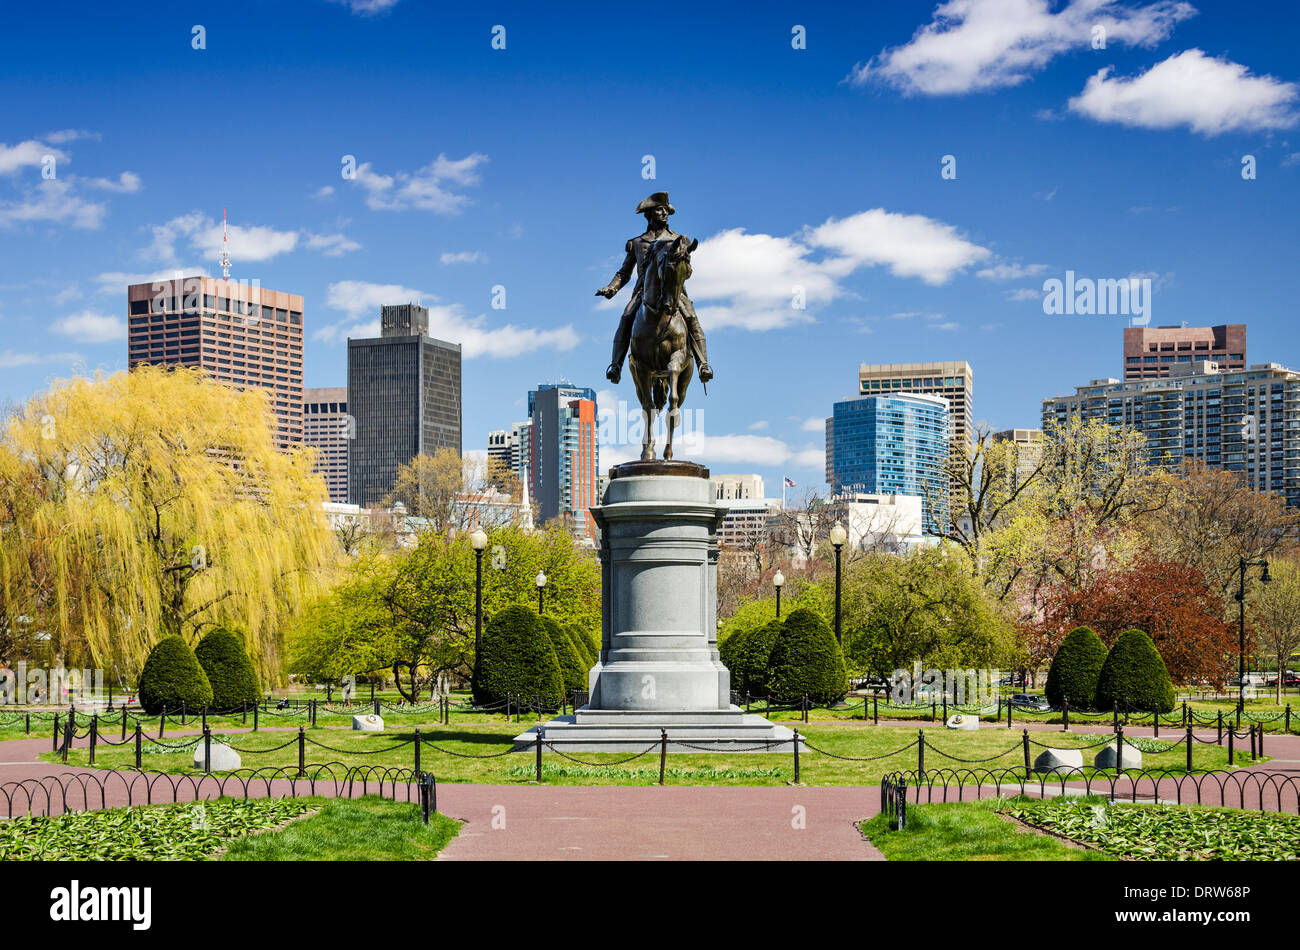 Boston, Massachusetts au jardin public au printemps. Photo Stock